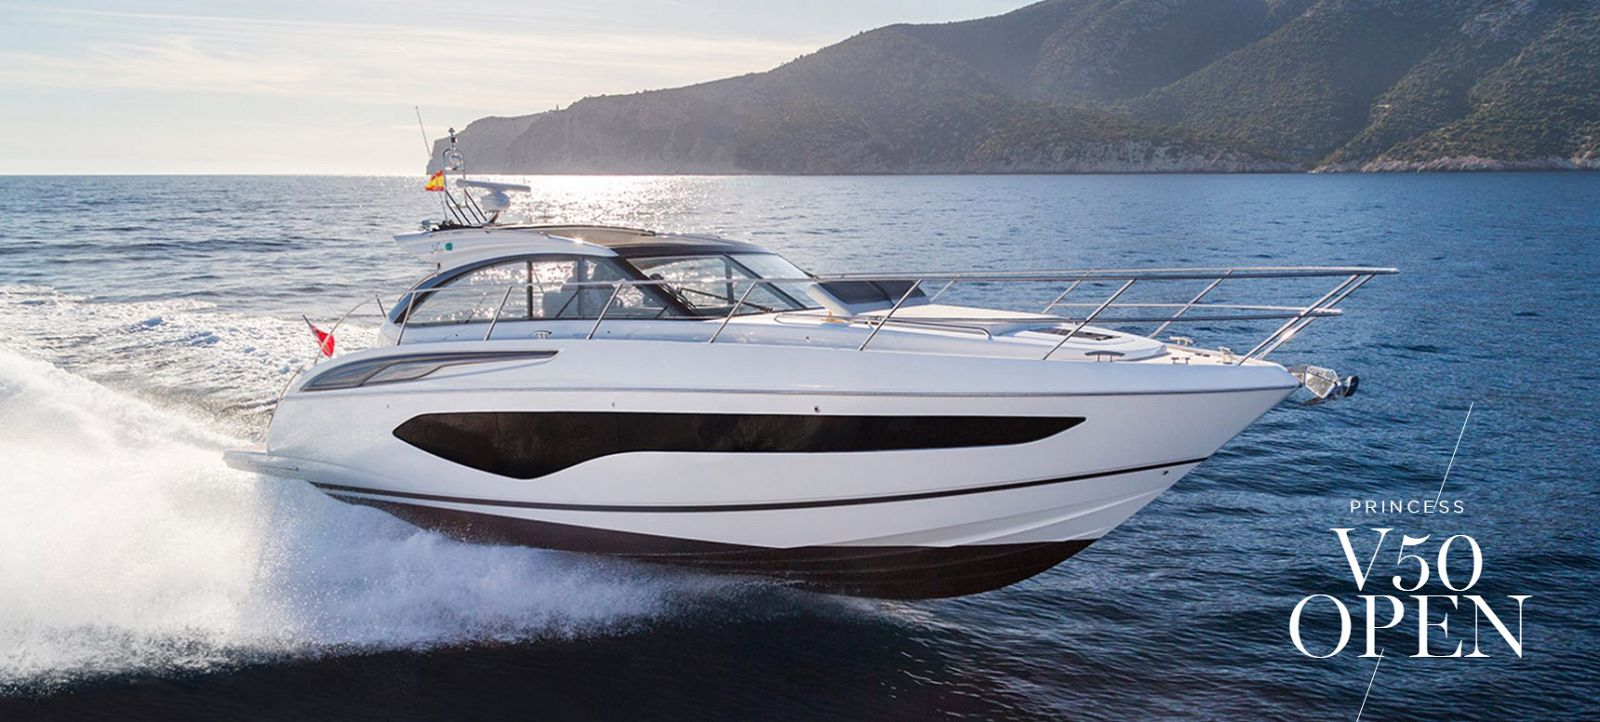 Princess Yachts V50 - Open